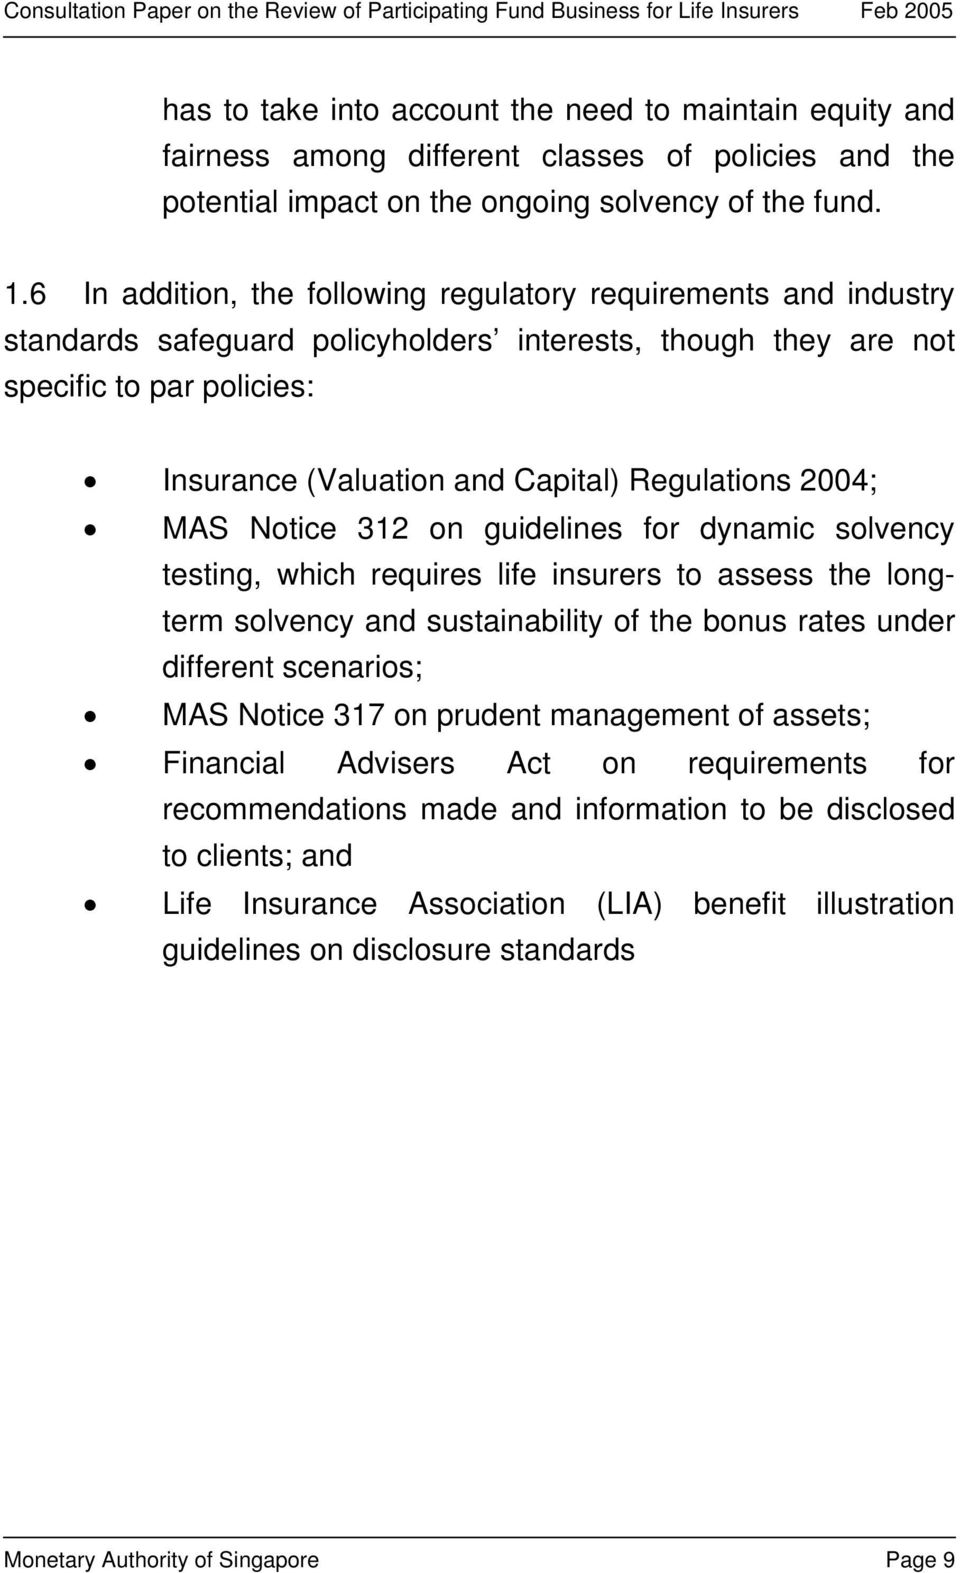 Regulations 2004; MAS Notice 312 on guidelines for dynamic solvency testing, which requires life insurers to assess the longterm solvency and sustainability of the bonus rates under different